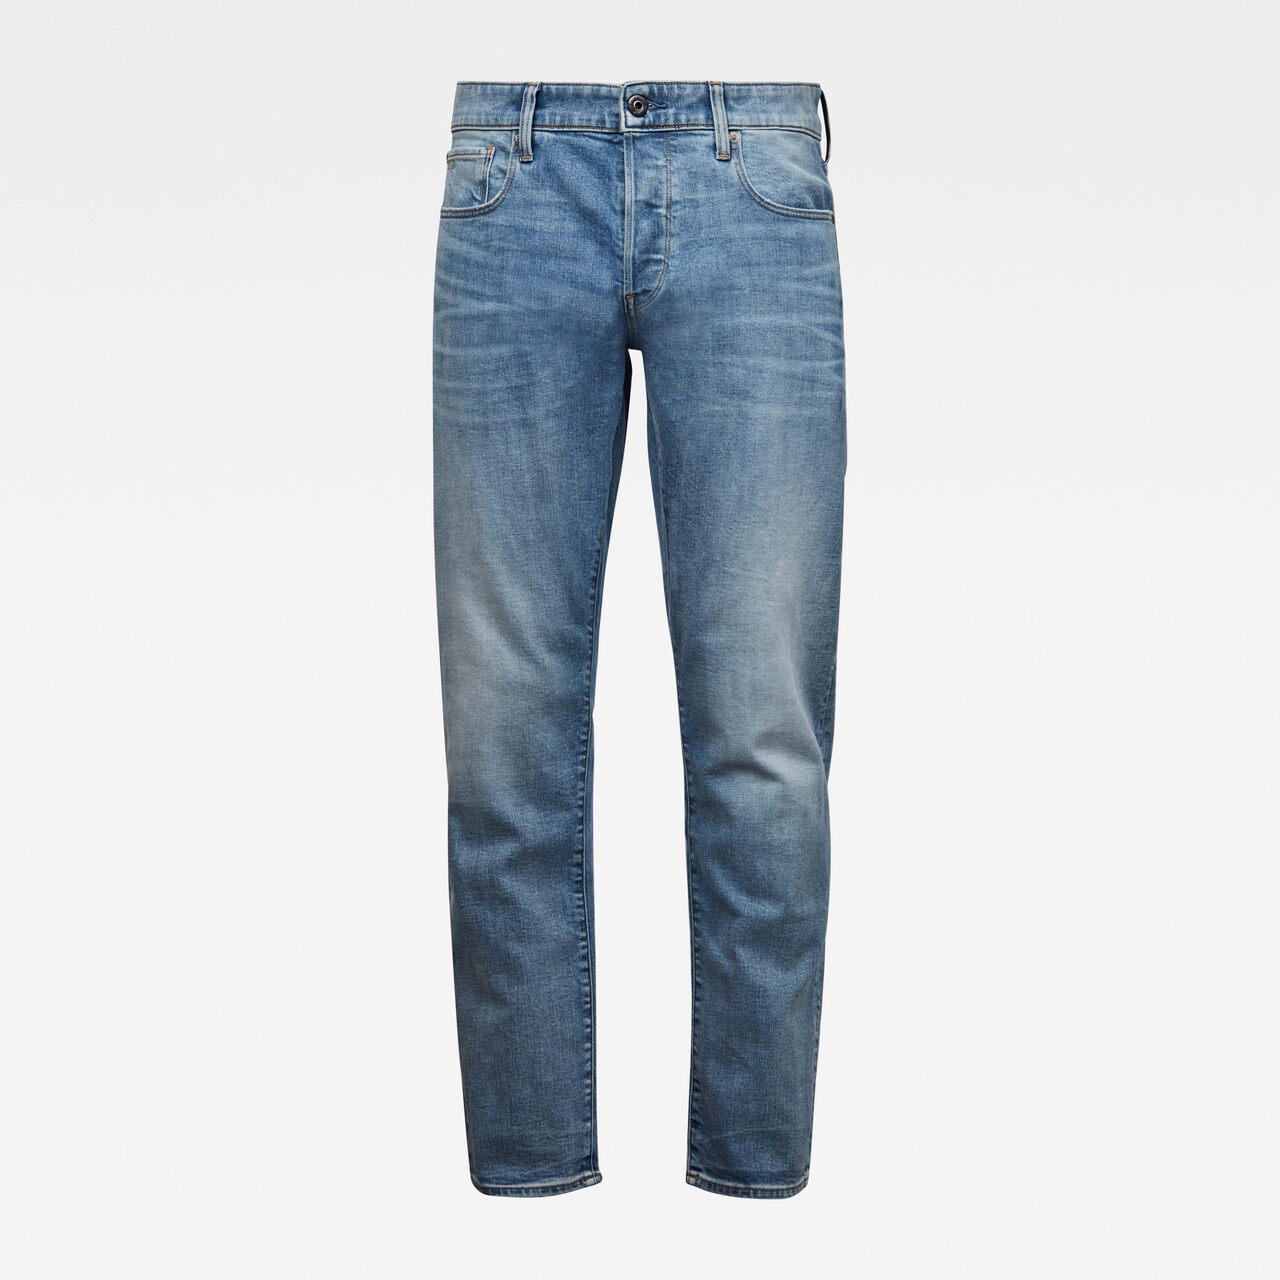 G-STAR - JEANS / 3301 STRAIGHT TAPERED